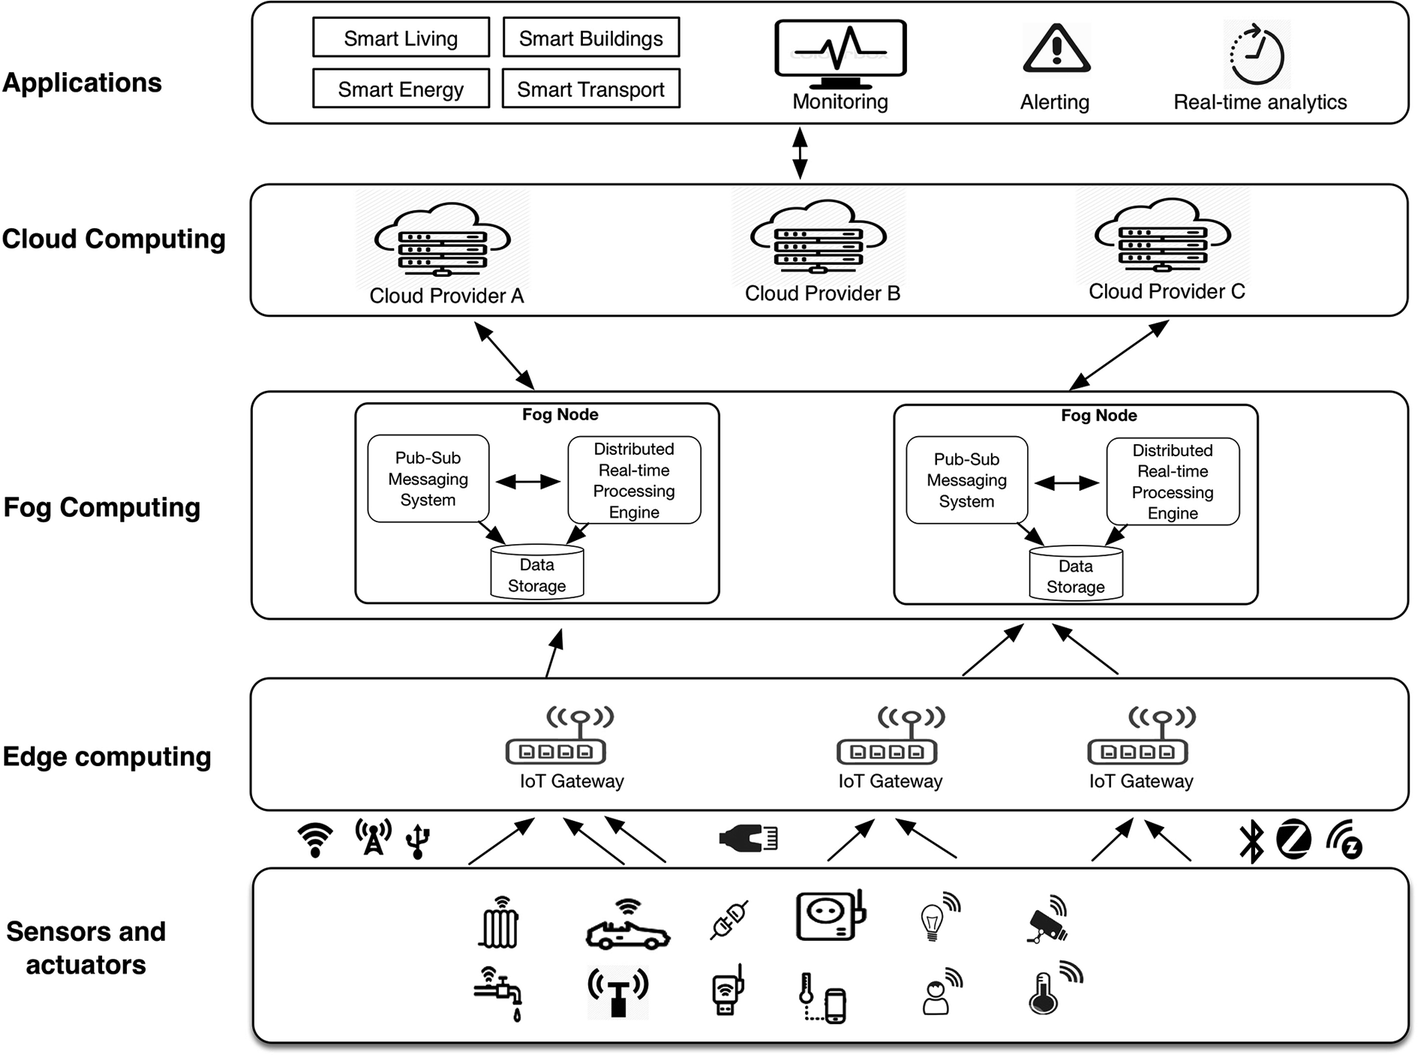 A Fog Node Architecture for Real-Time Processing of Urban